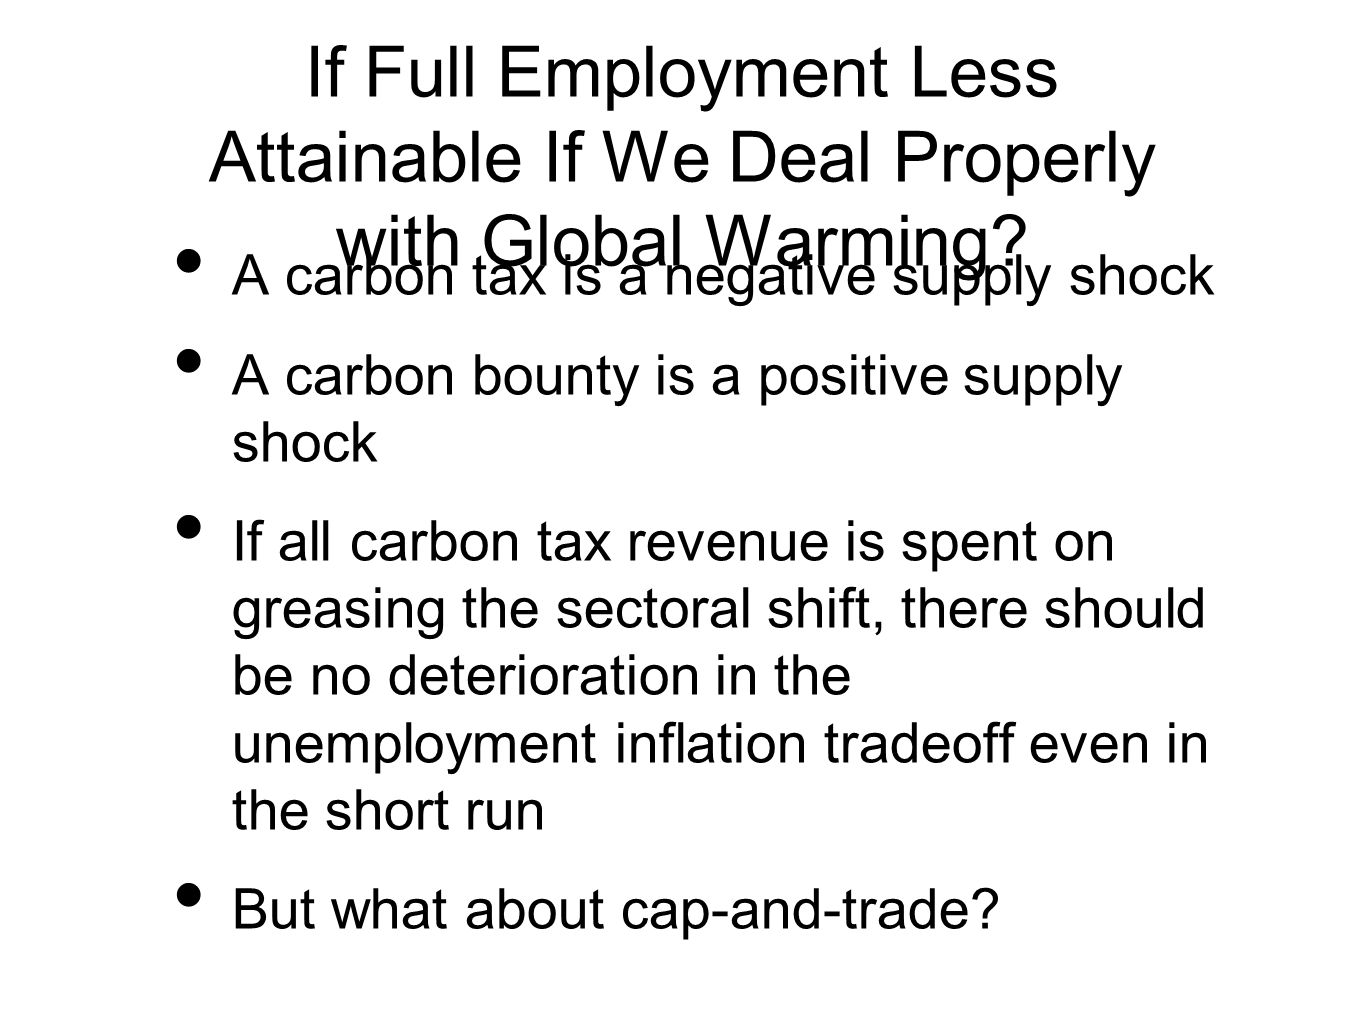 If Full Employment Less Attainable If We Deal Properly with Global Warming.